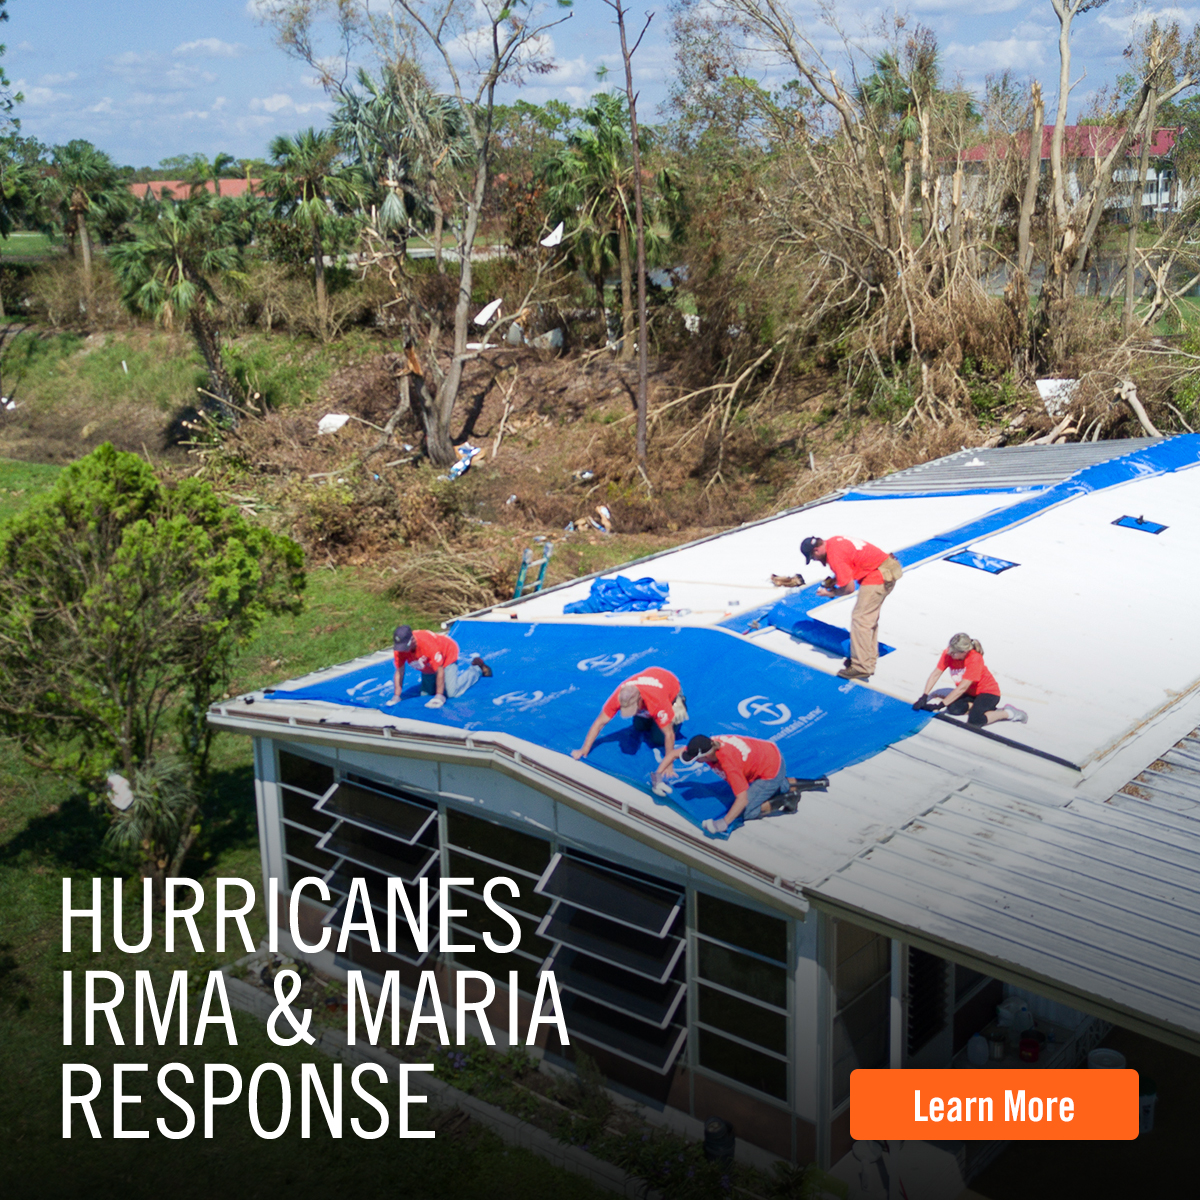 Learn More about our Hurricane Irma Response